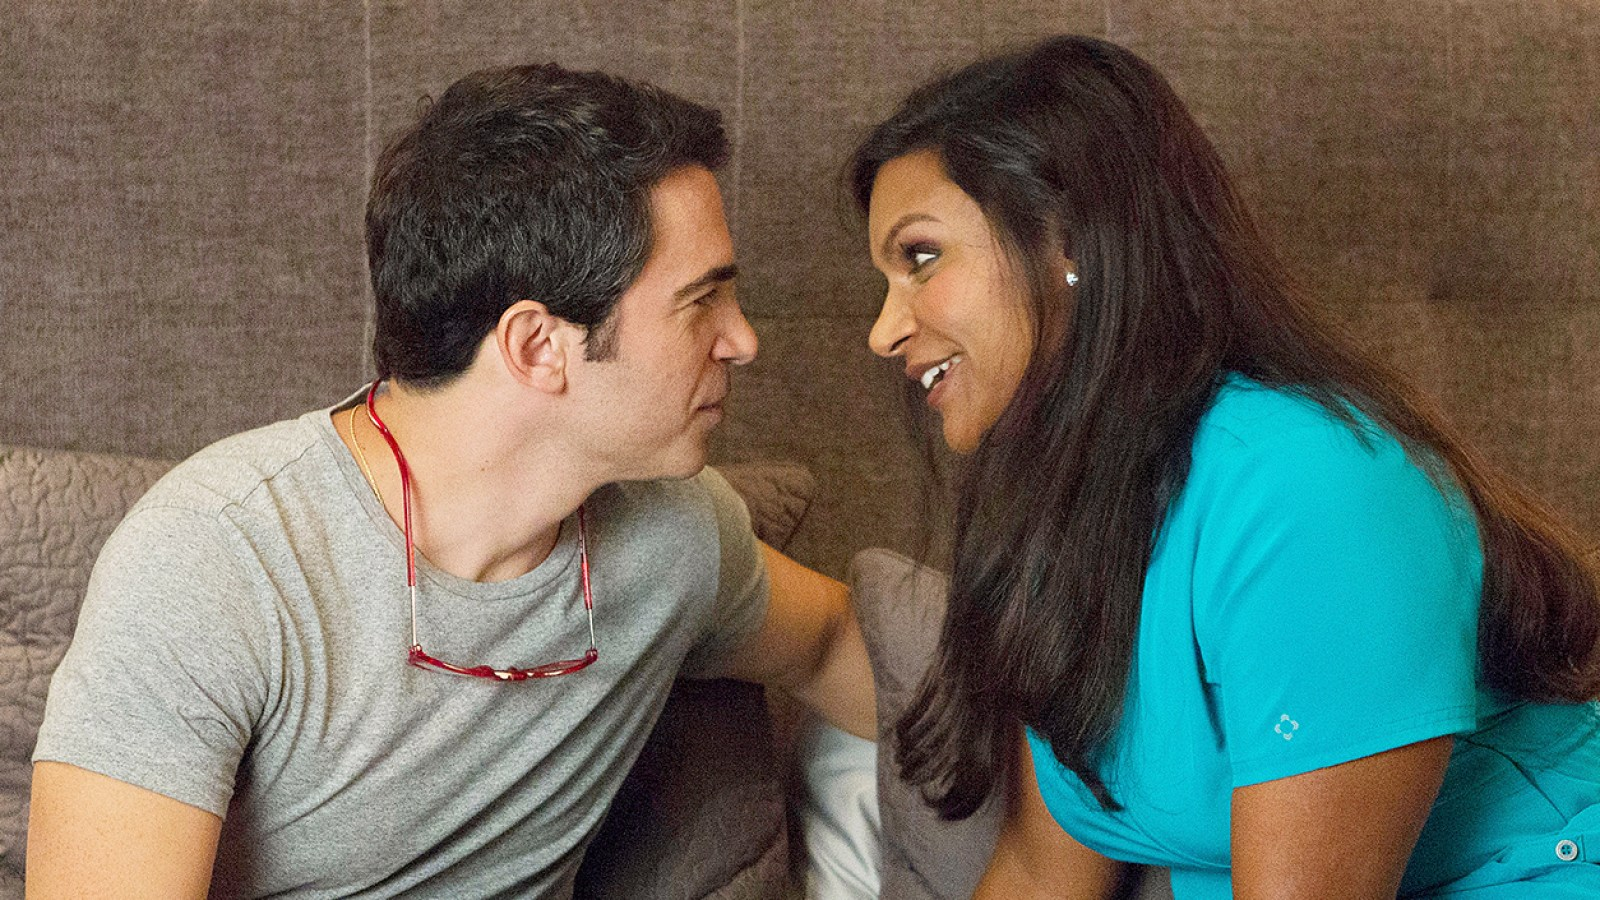 Does mindy ever hook up with danny